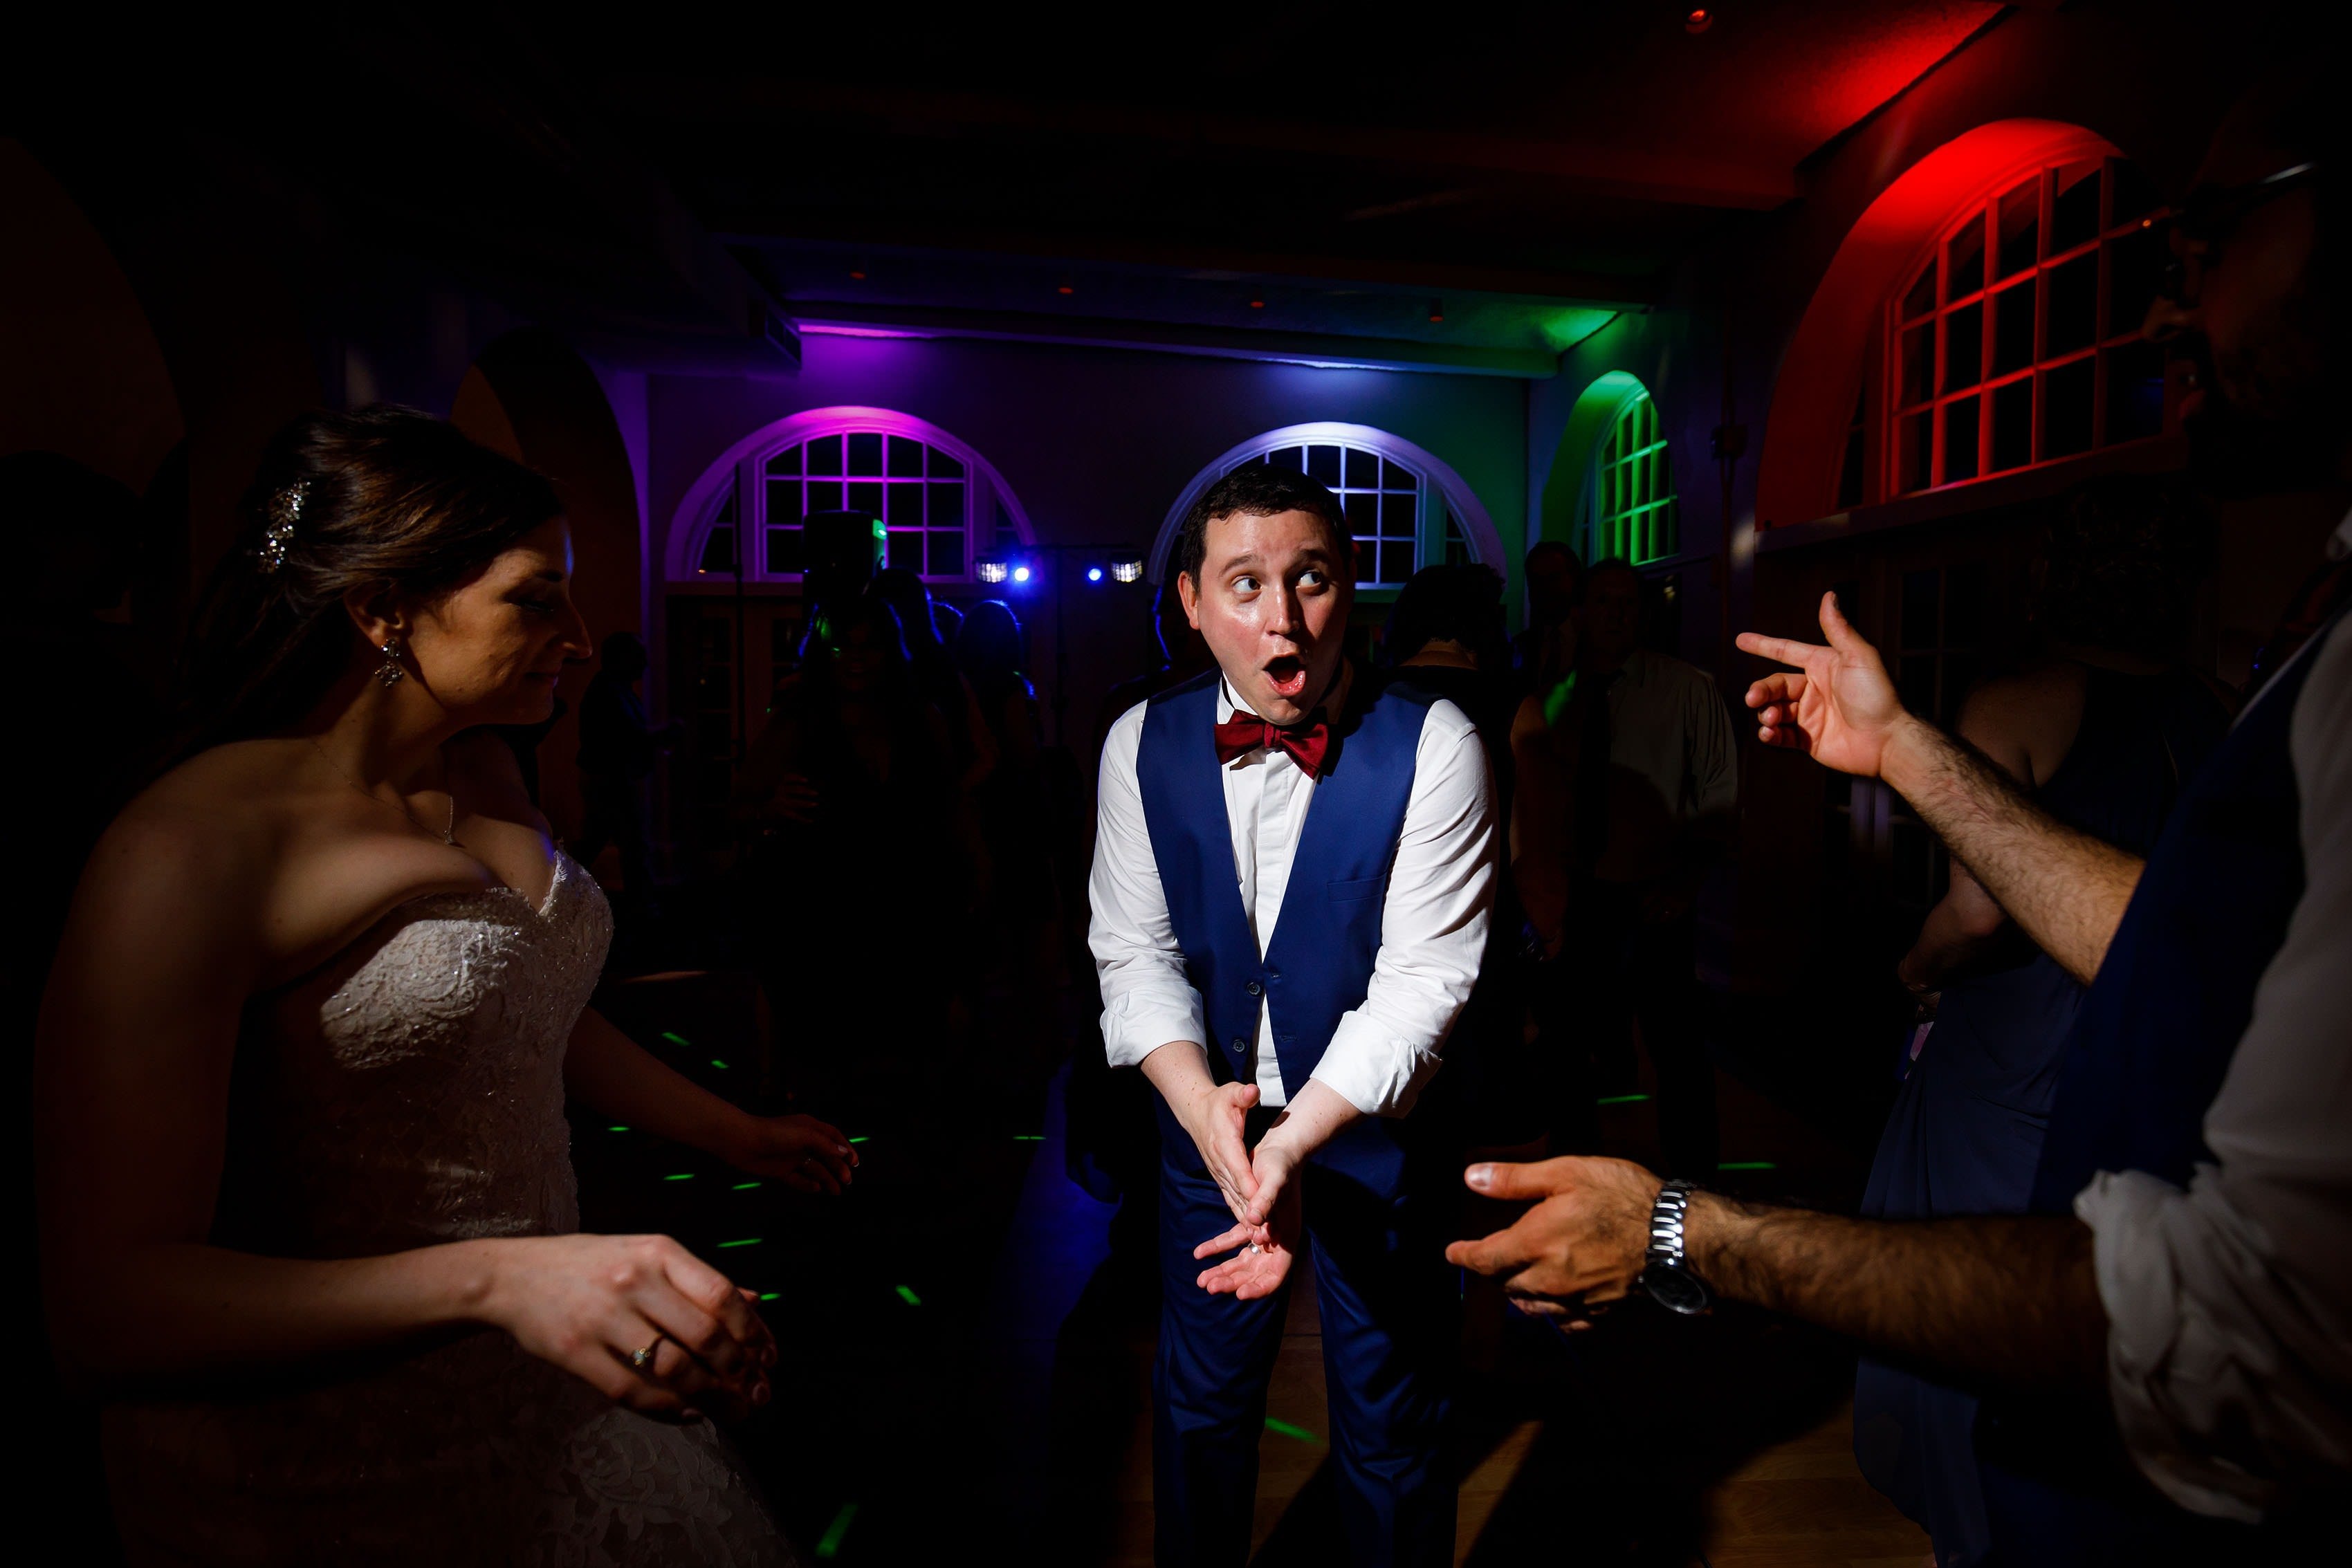 The groom dances with the bride at Ravisloe